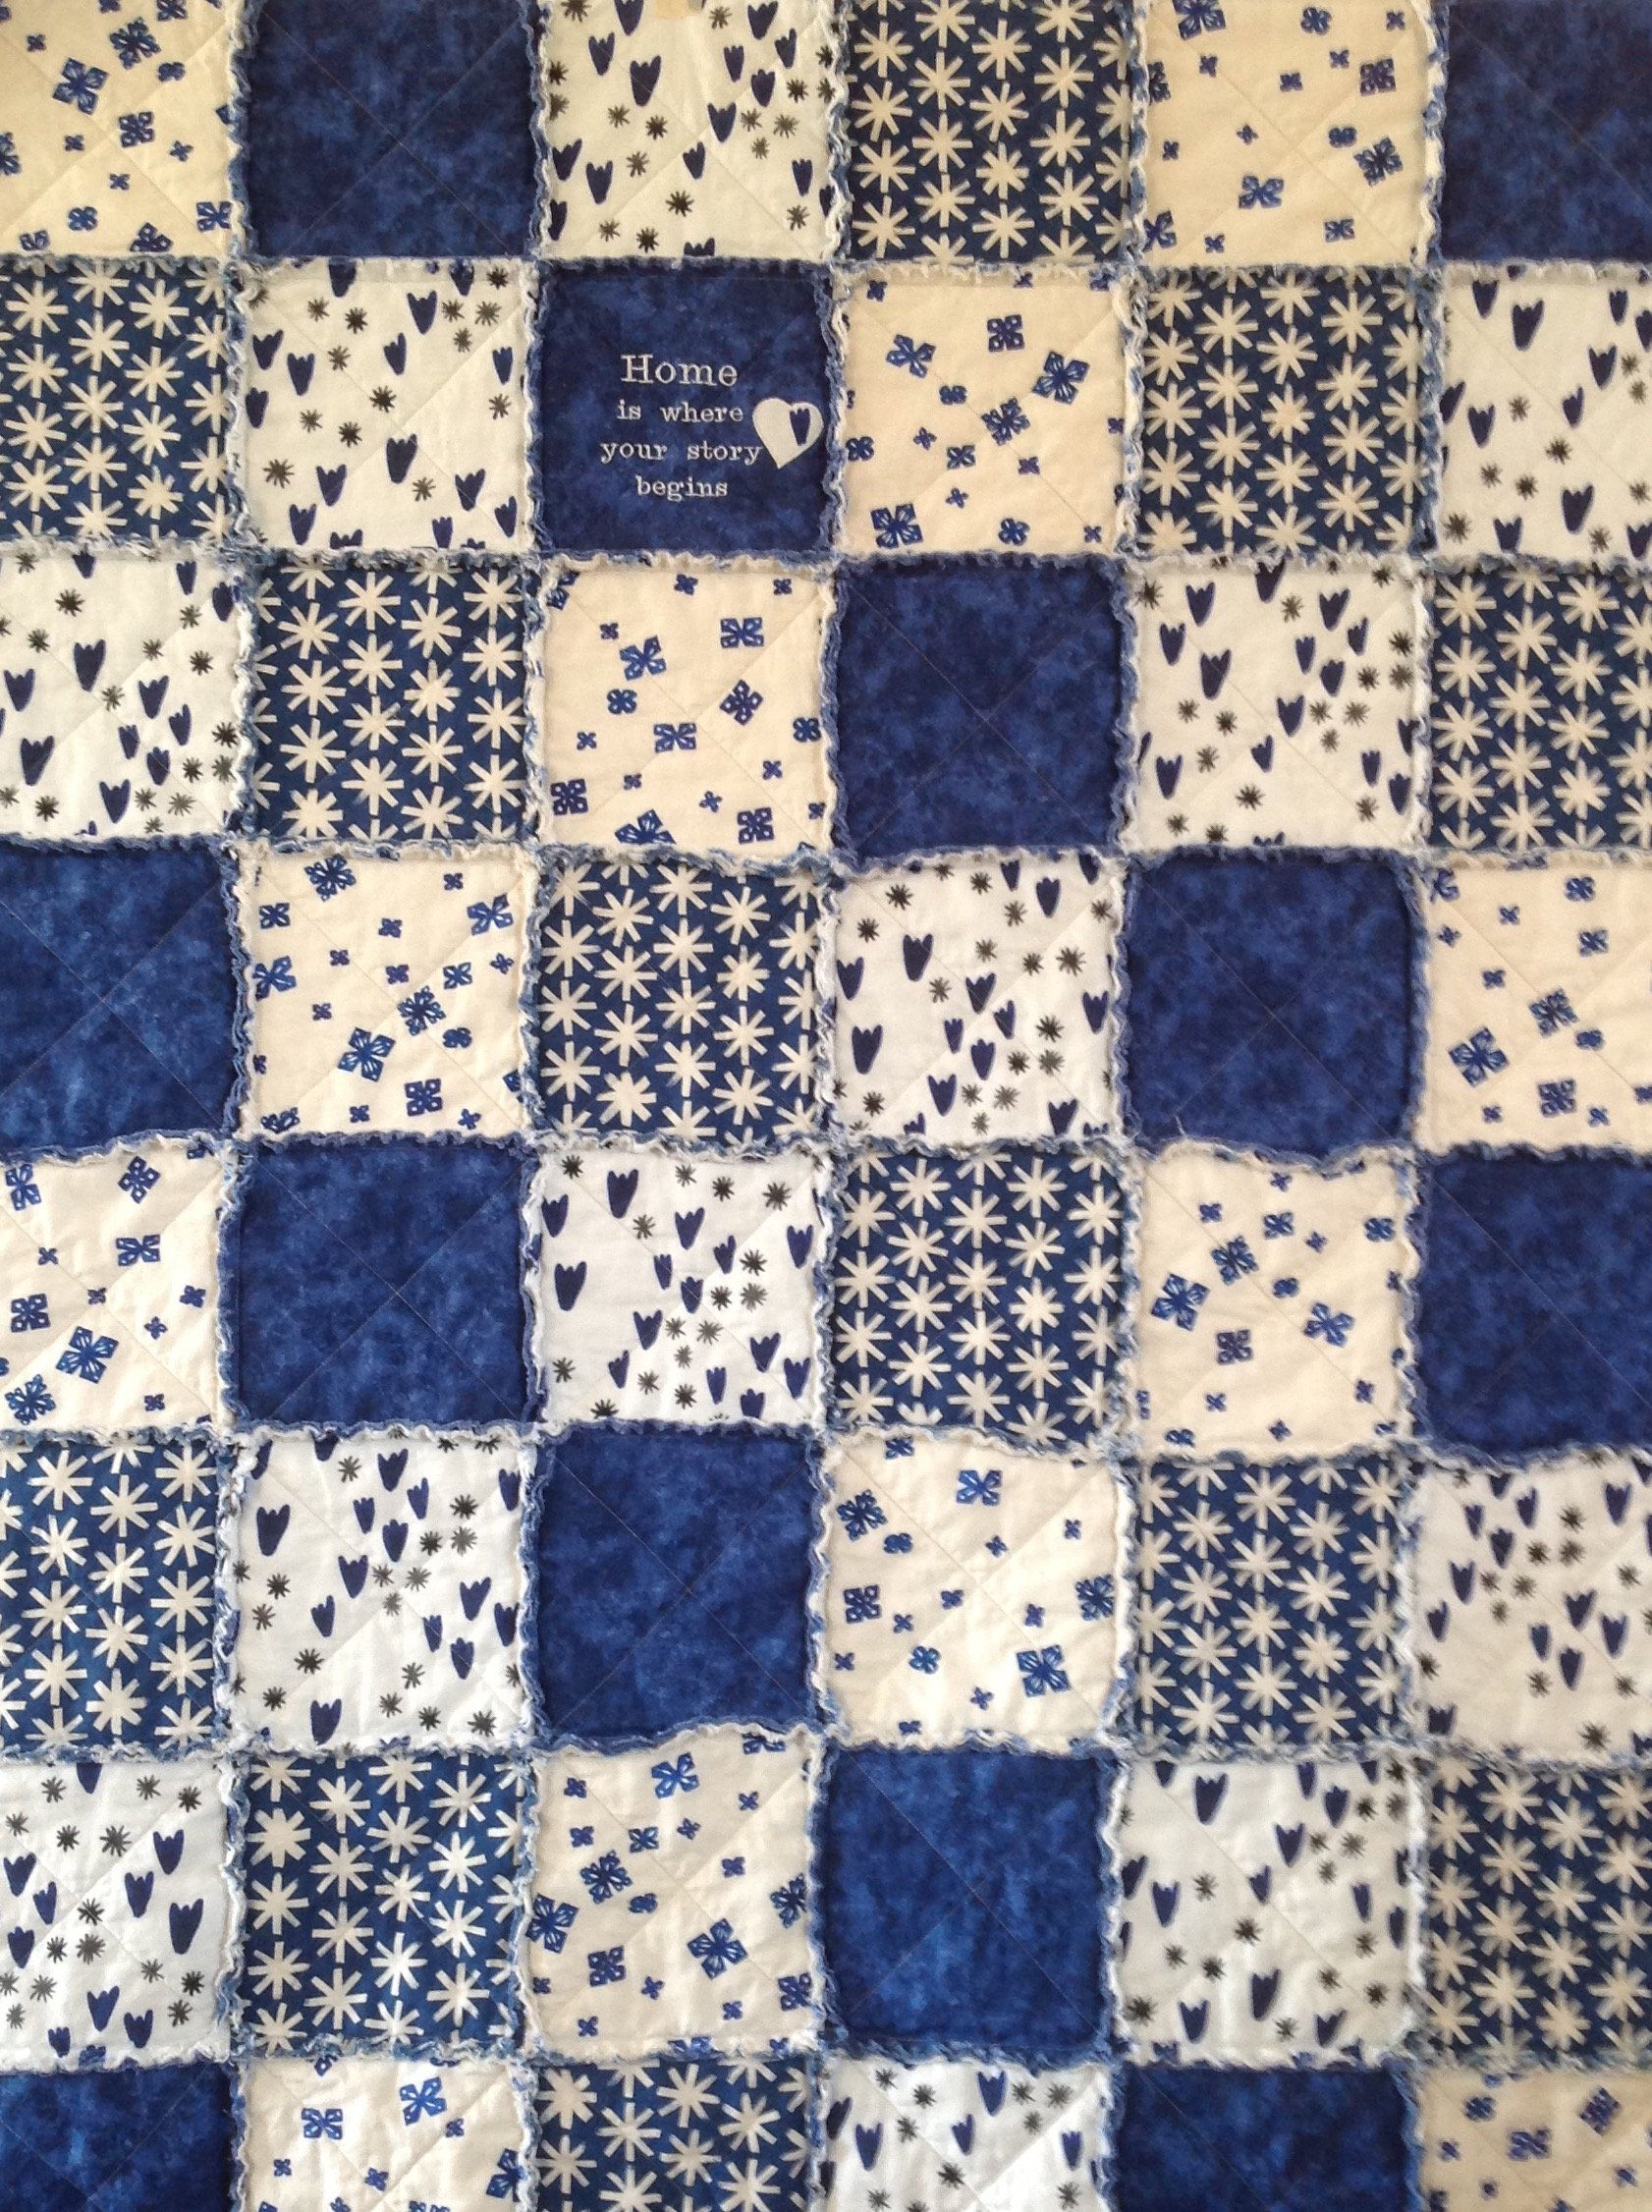 Homemade quilt rag quilt throw patchwork quilt embroidered blanket quilts handmade home is where rag quilt for sale blue white quilt by